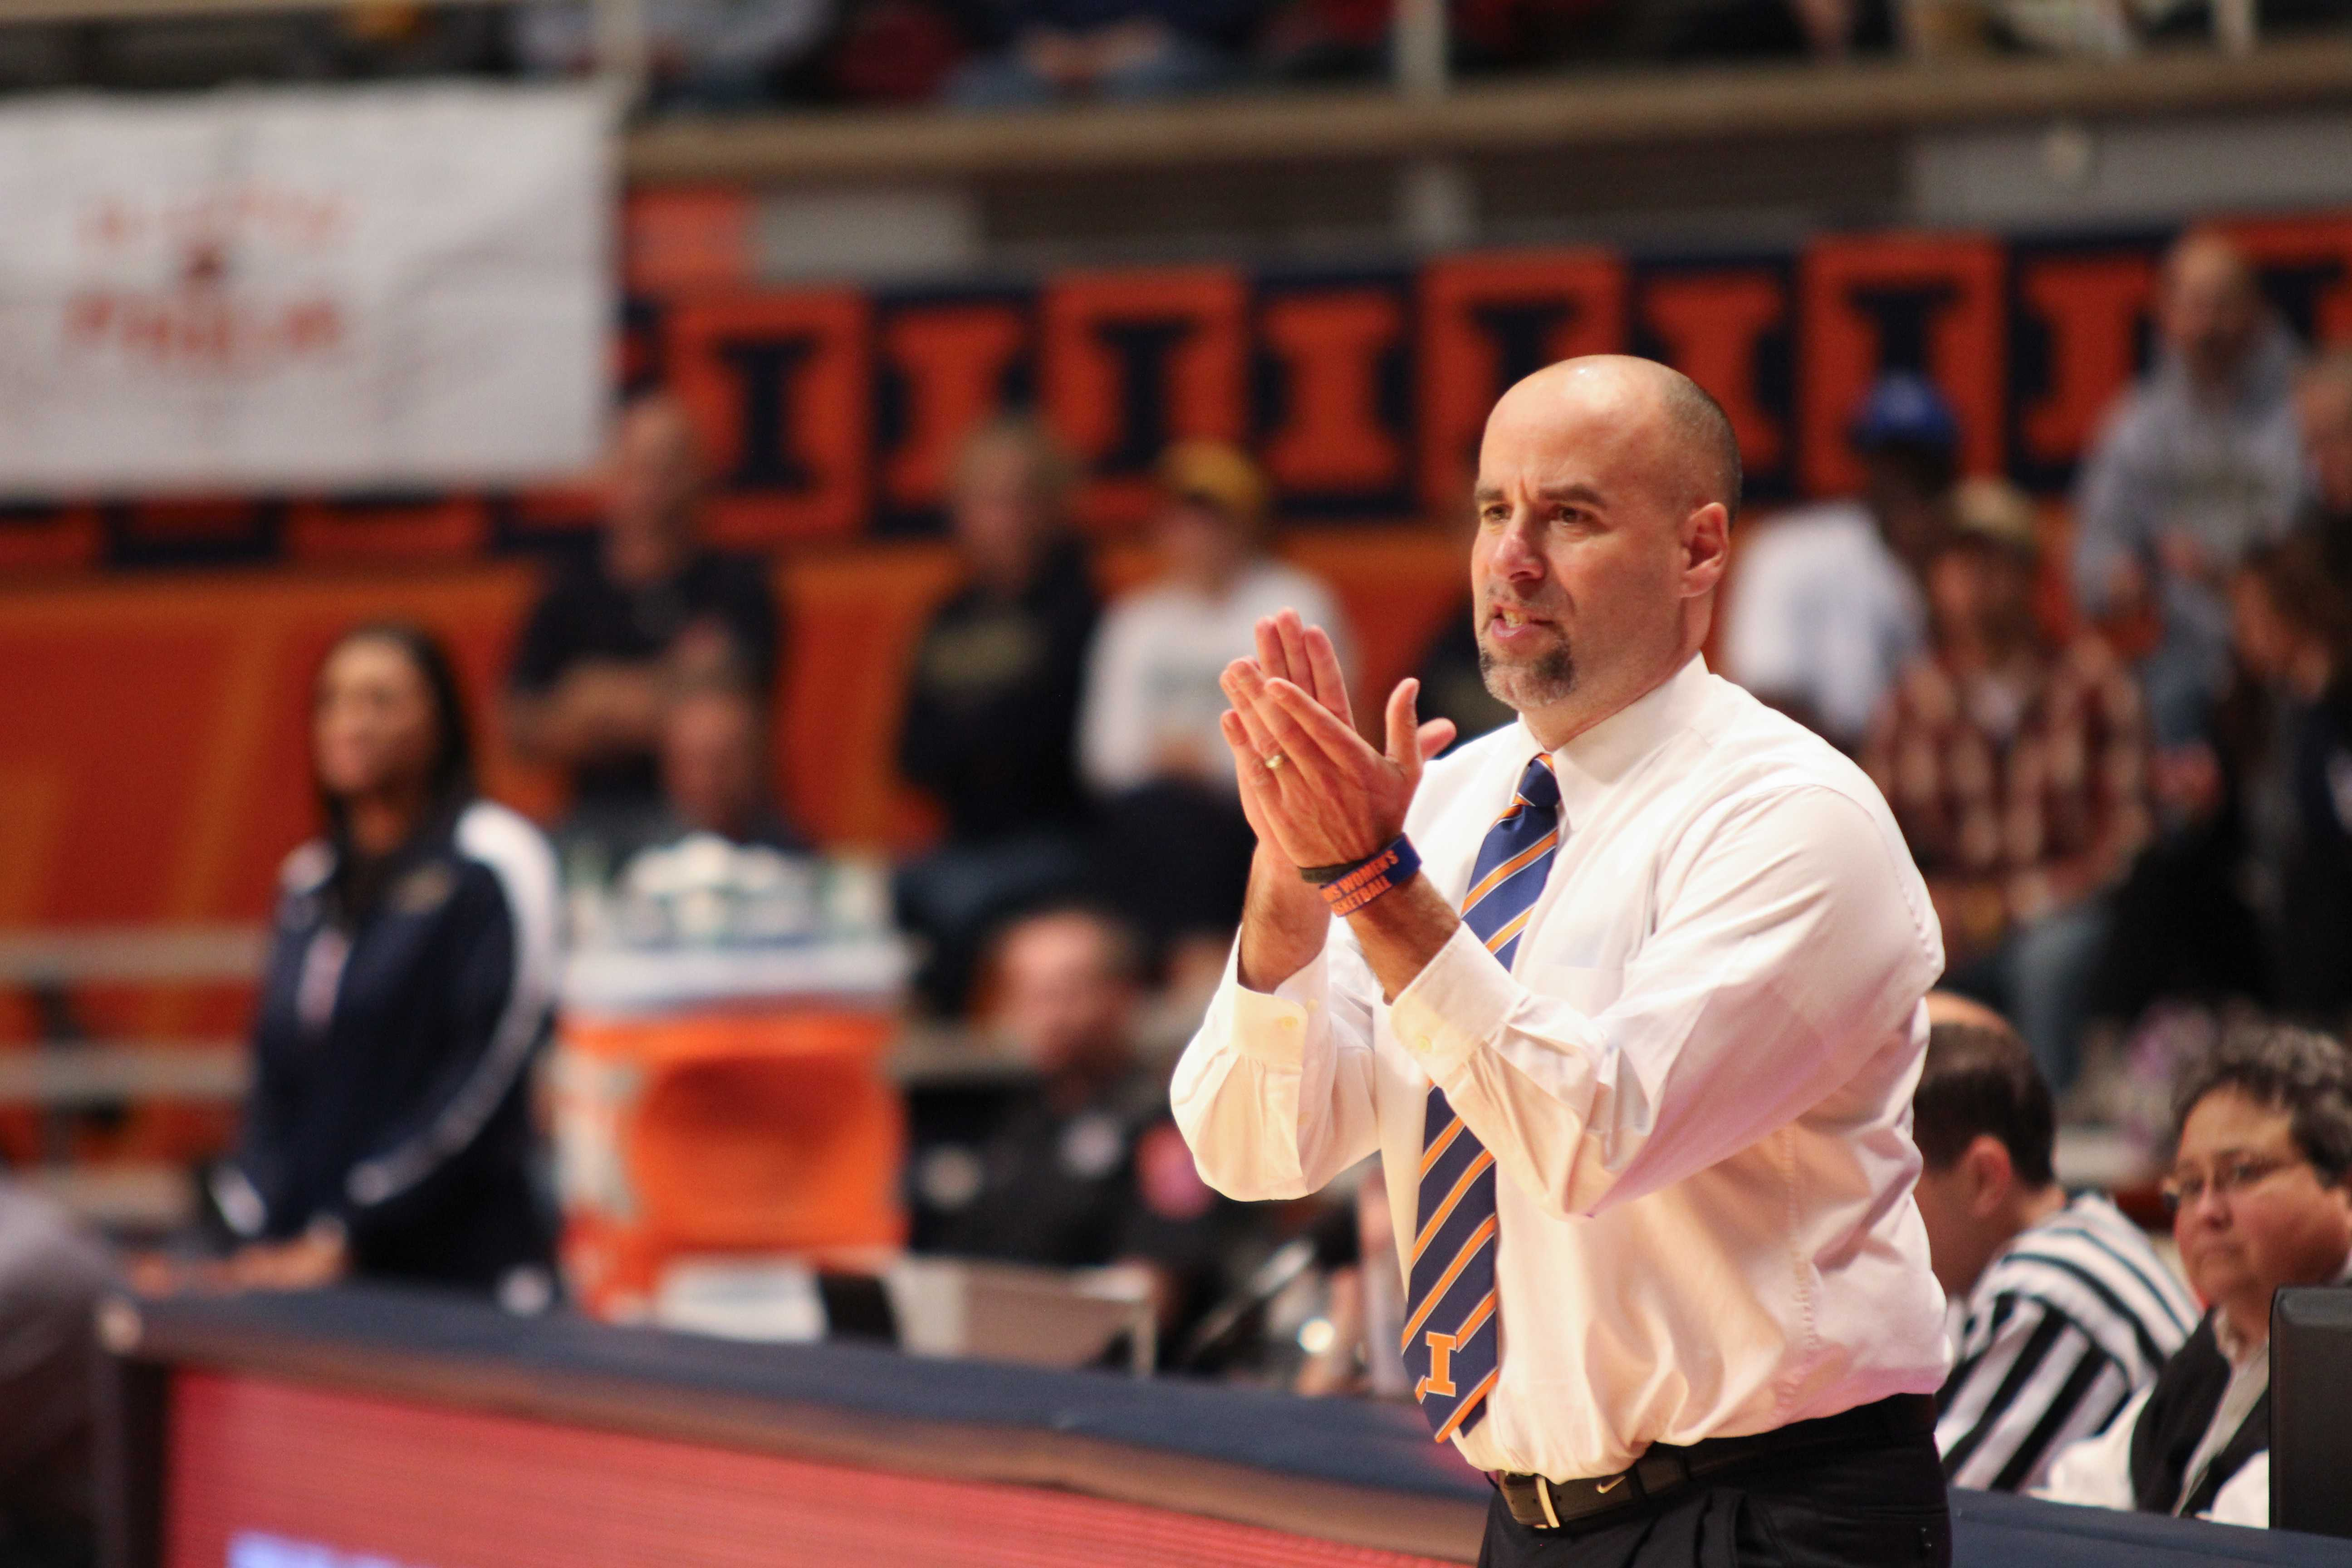 Illinois head coach Matt Bollant applauds his team's performance during the FIghting Illini's 89 to 37 win against Mariam at Assembly Hall, on Tuesday, Oct. 30, 2012.